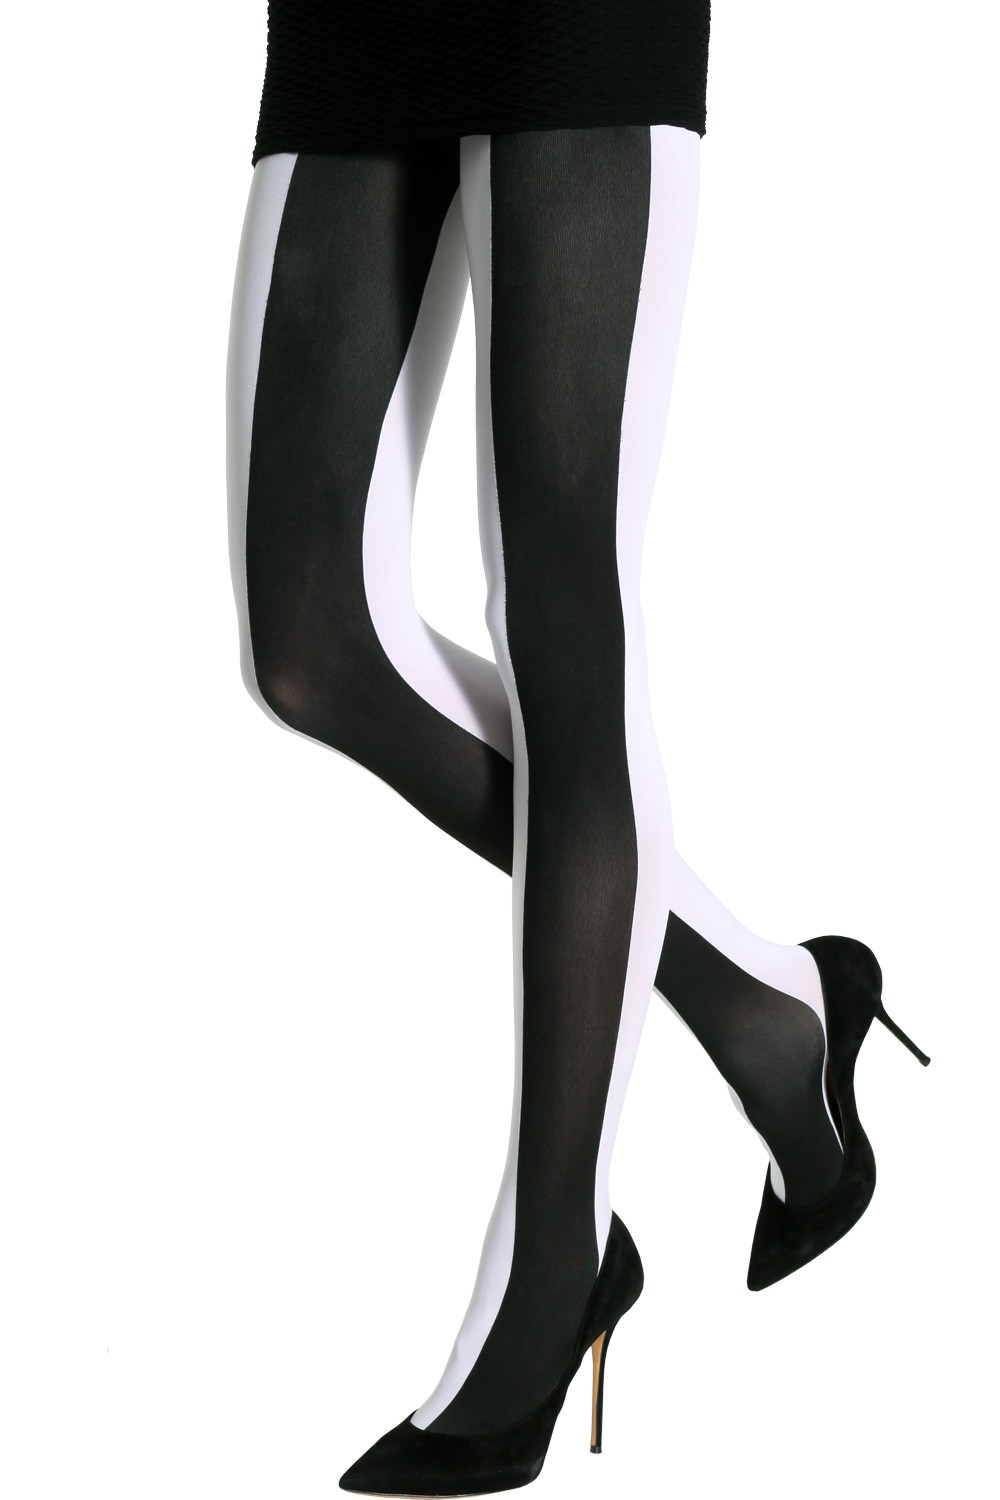 bcce07eae1f2f Two Toned Large Vertical Stripes Tights   Timeless Styles   Women ...